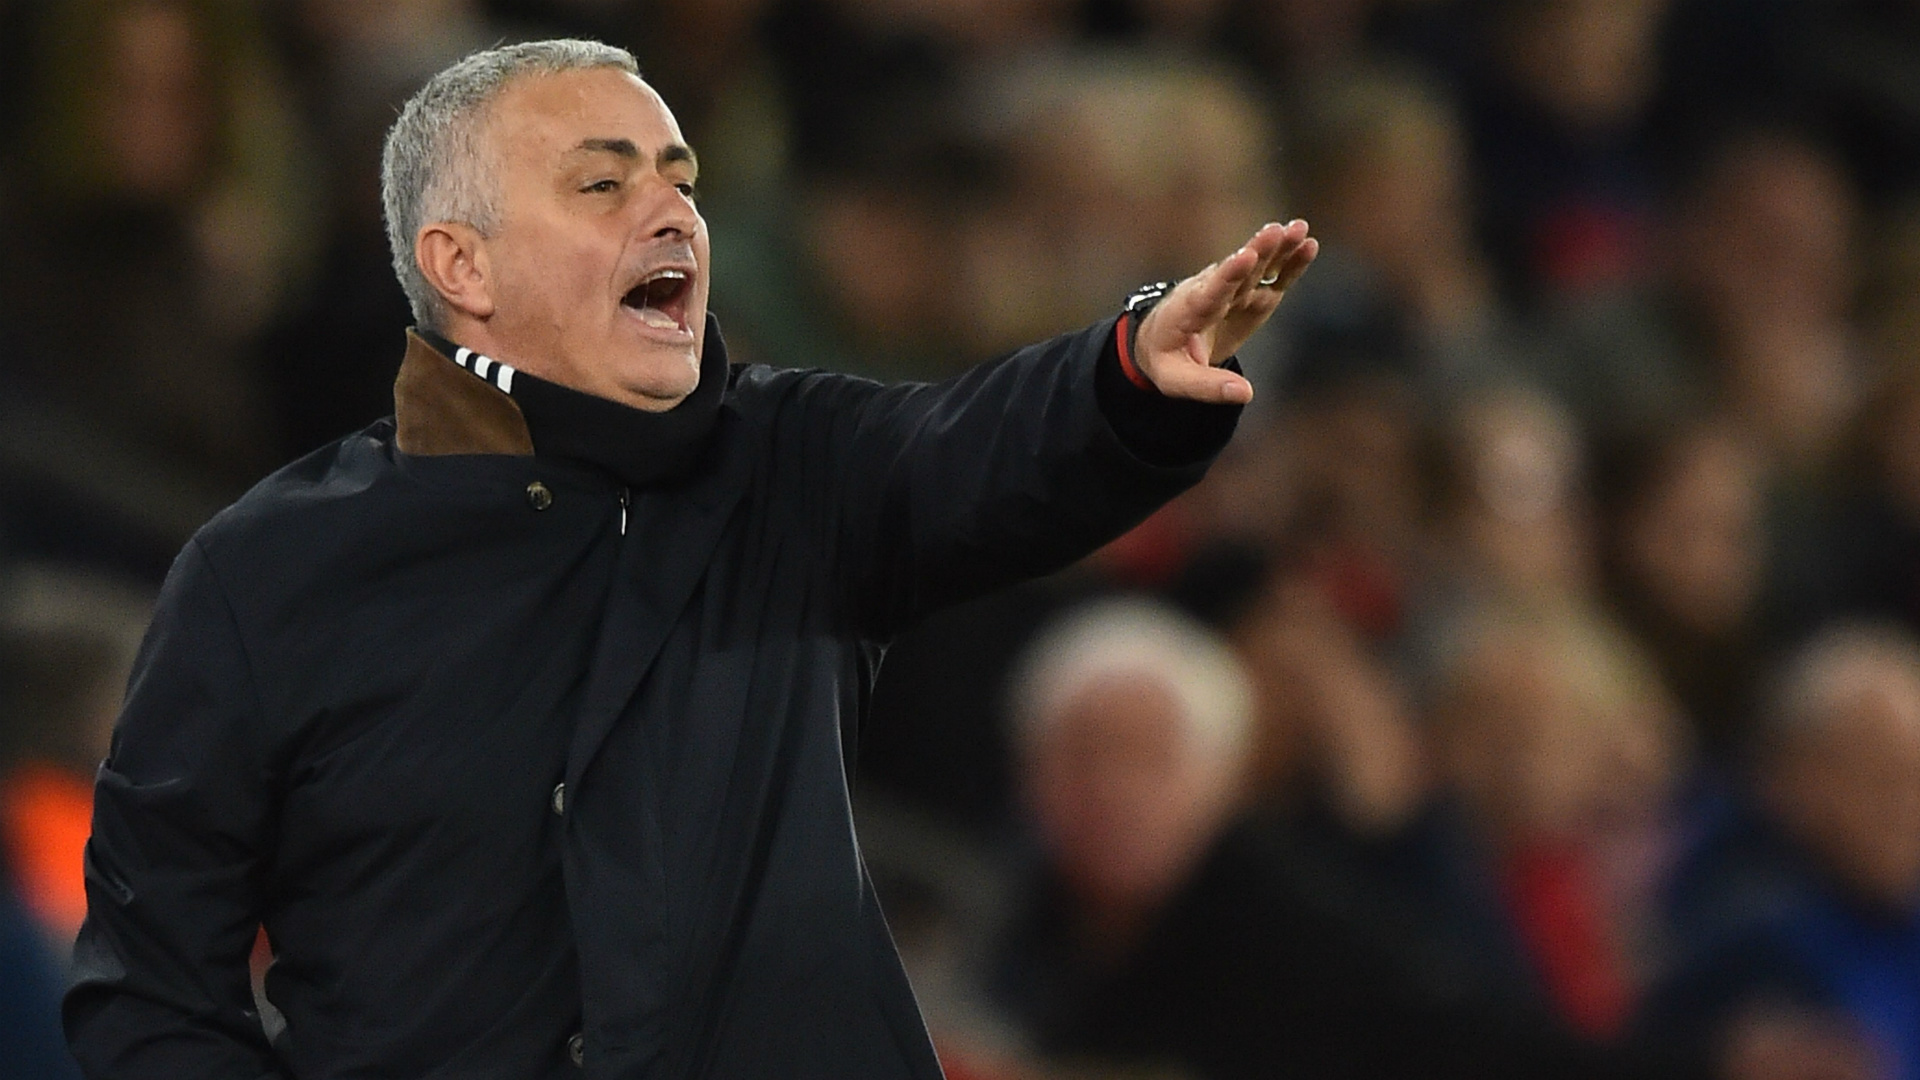 Jose Mourinho Kicked Wall In Fury After 2-2 Draw With Arsenal